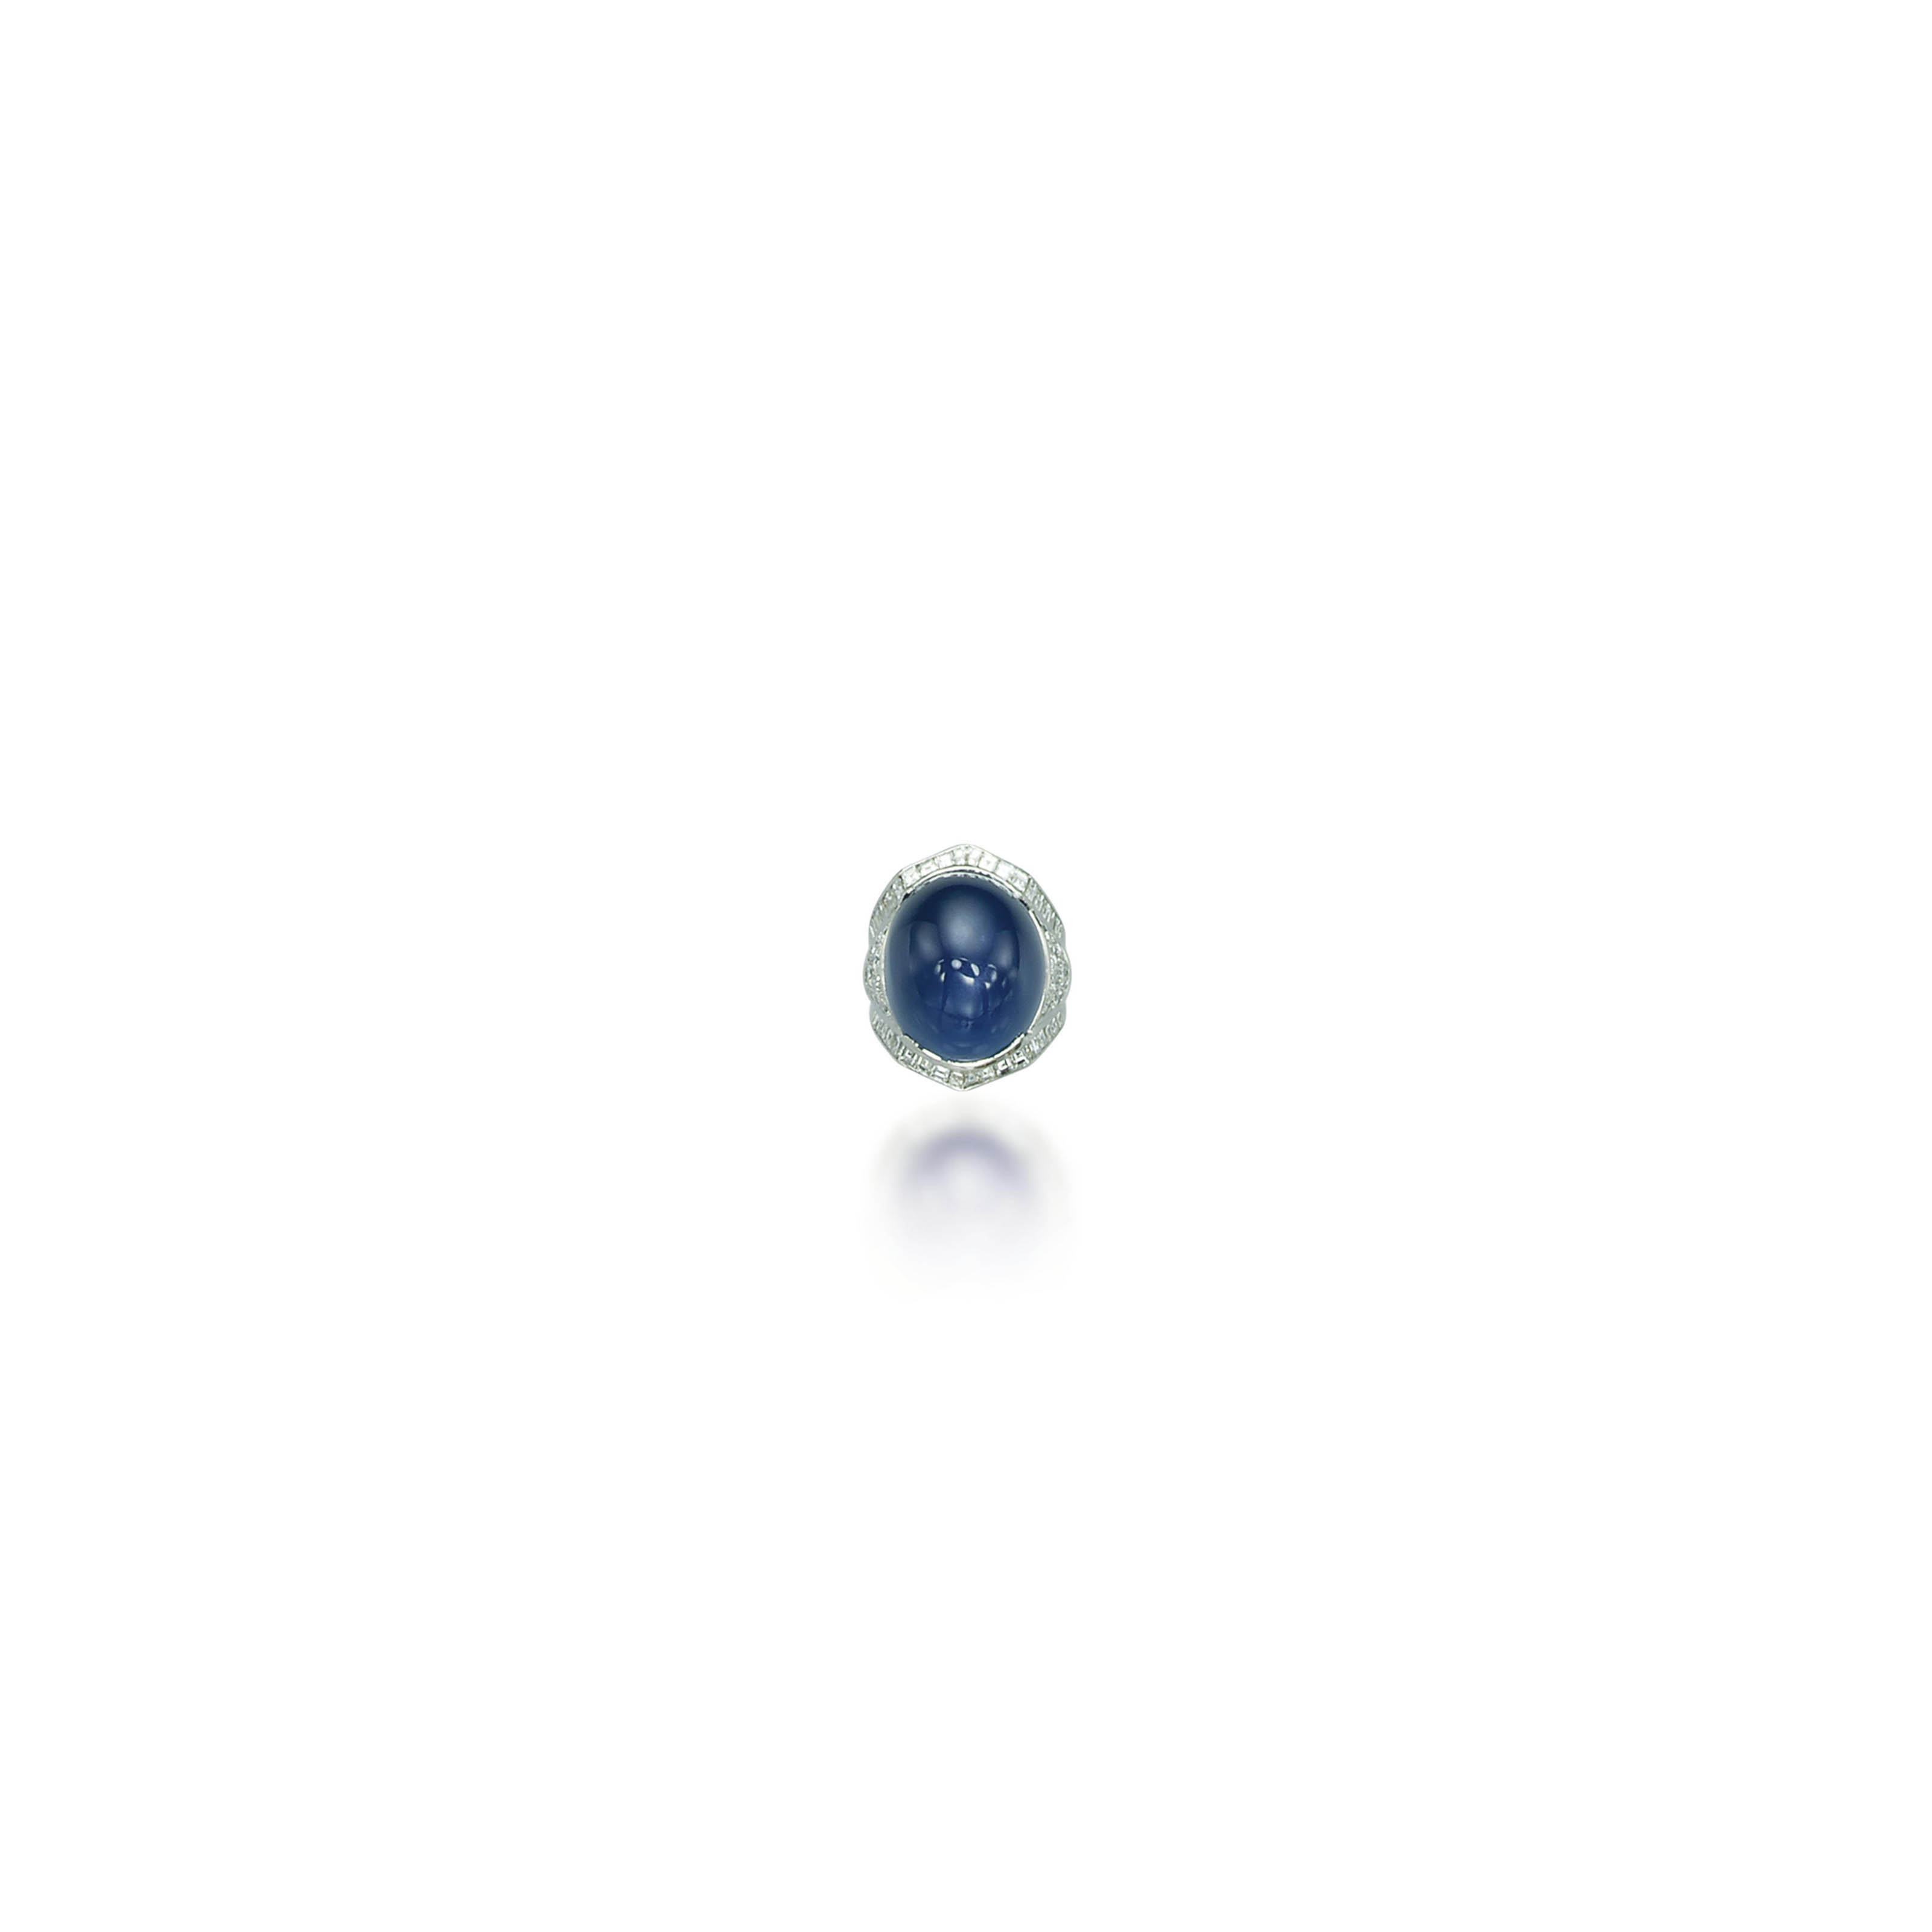 A STAR SAPPHIRE AND DIAMOND RING, BY ADLER